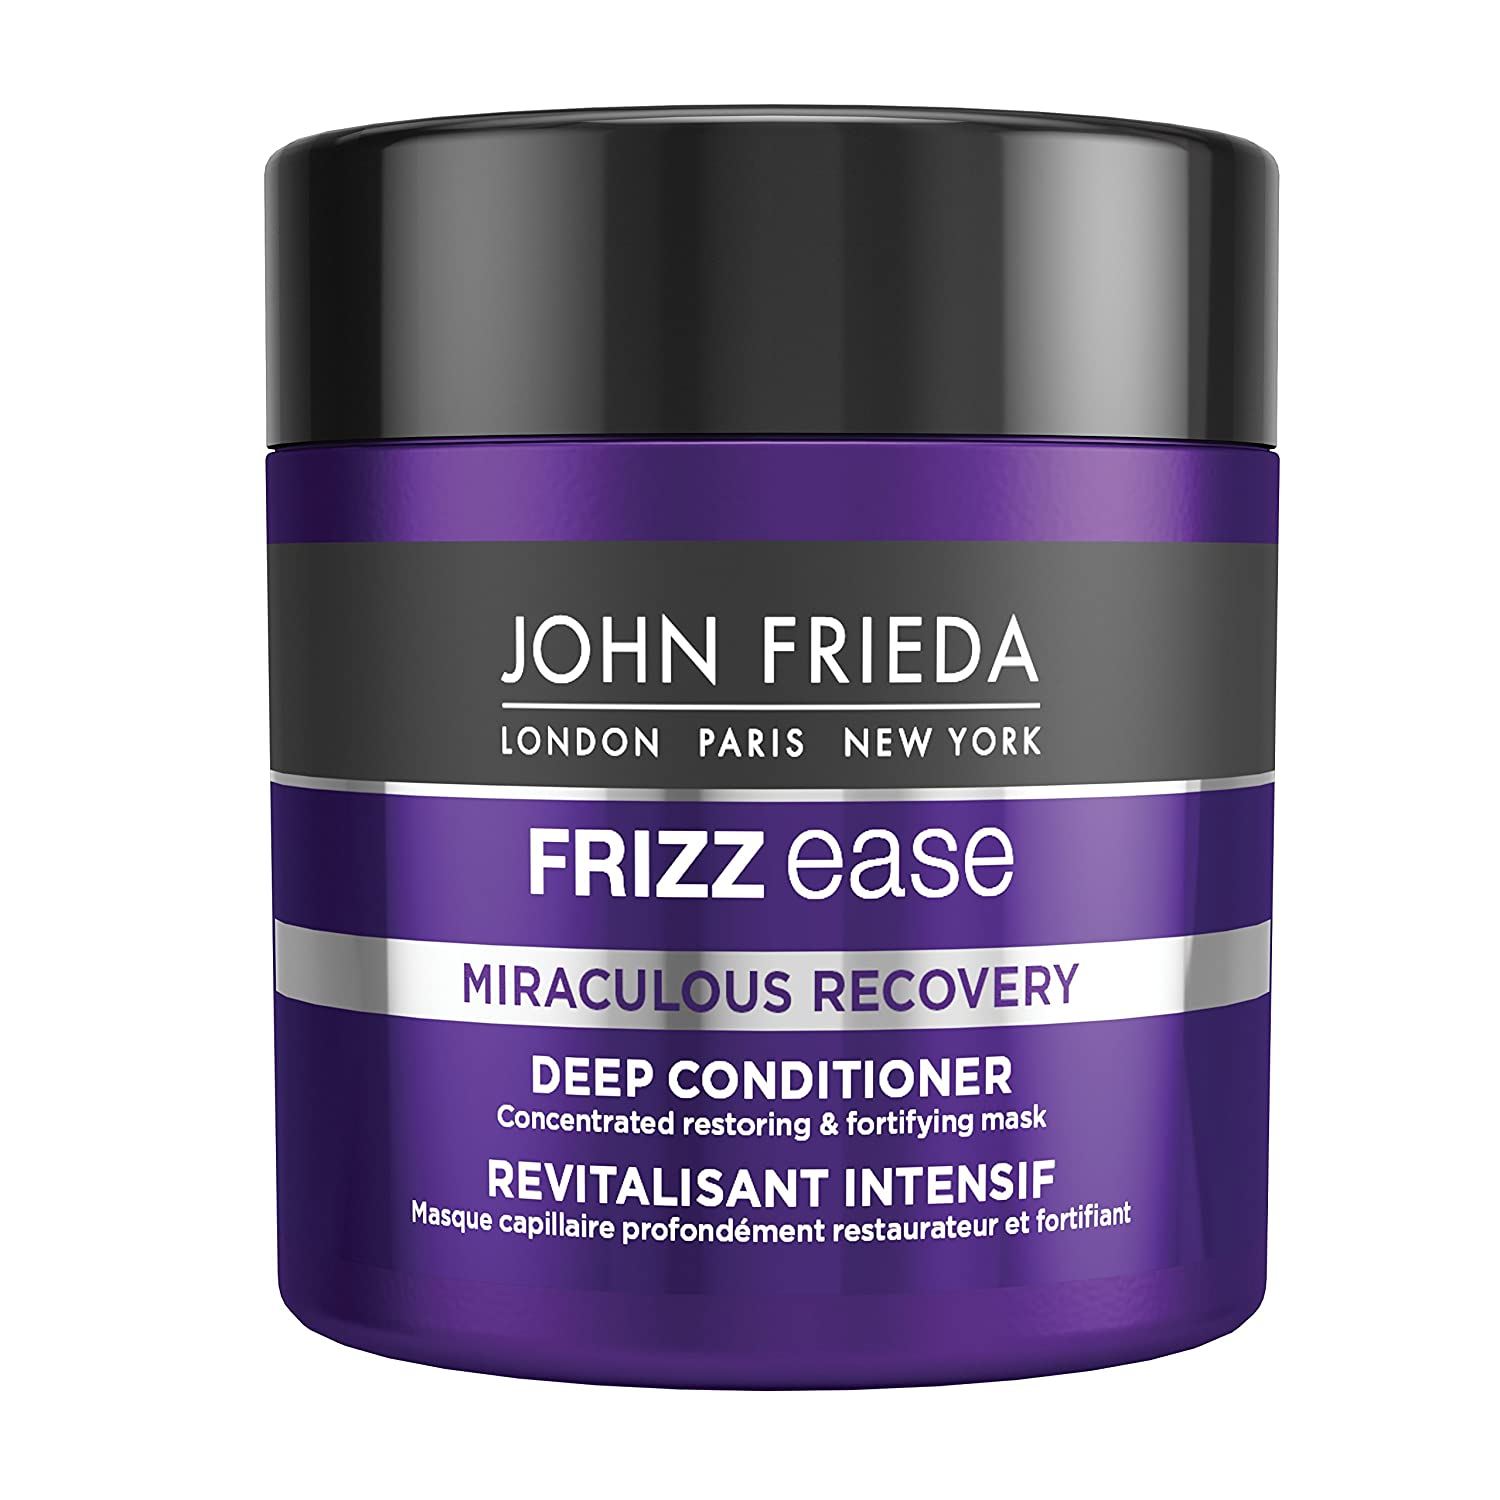 JOHN FRIEDA Frizz Ease Miraculous Recovery Deep Conditioner, 150 ml Kao